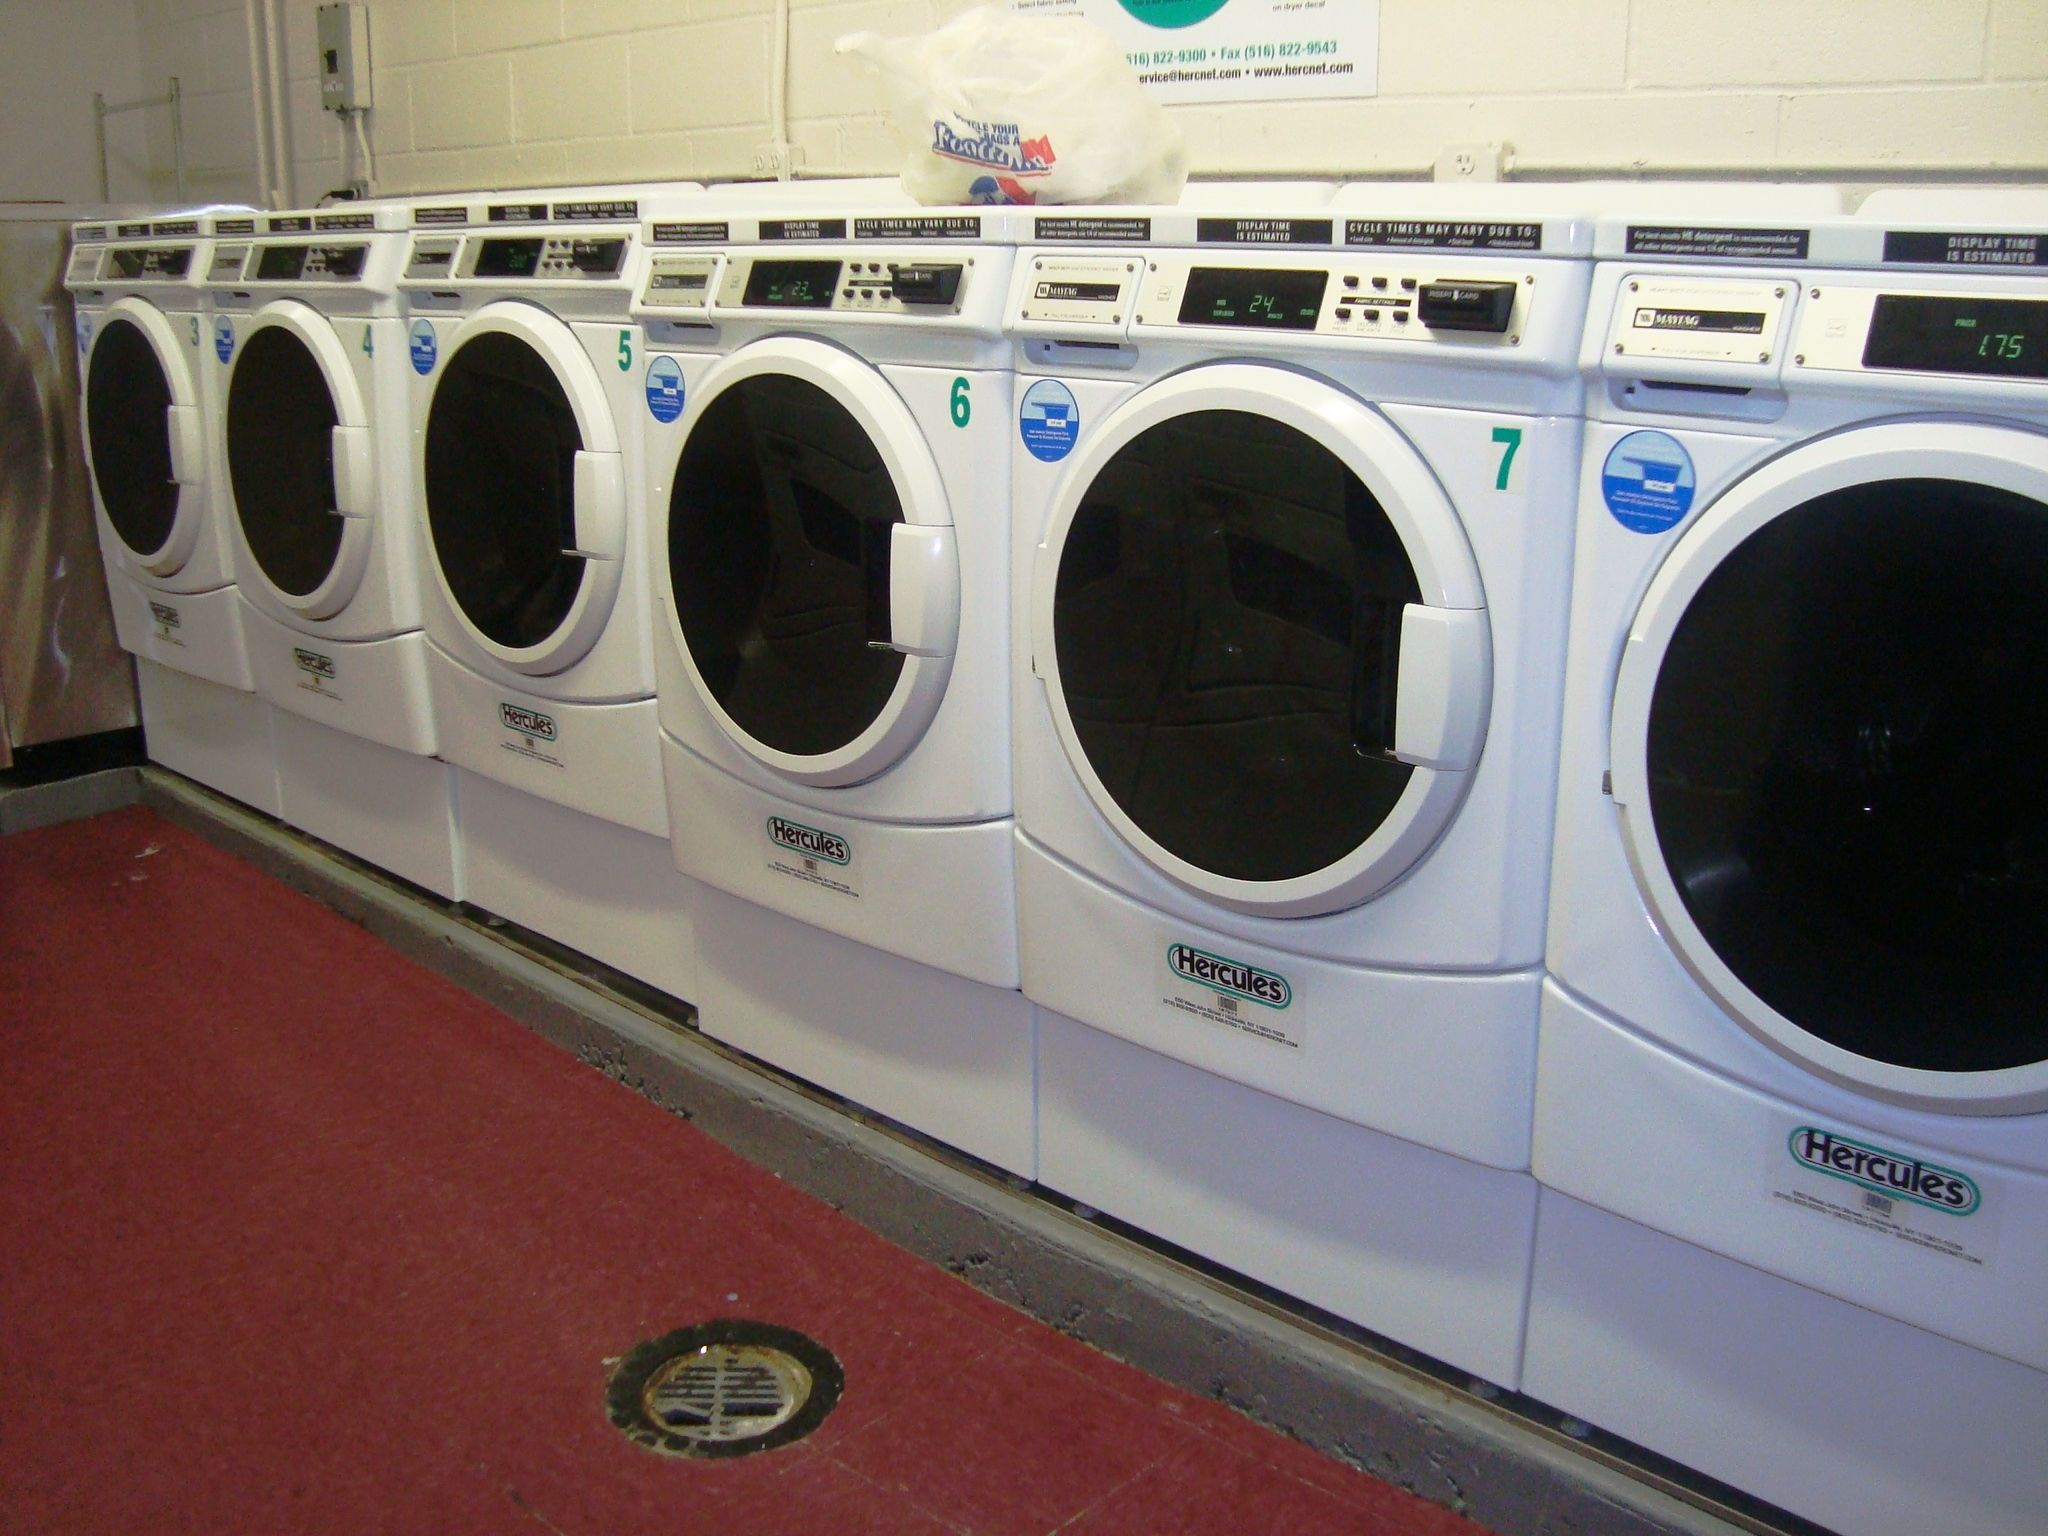 The laundry room at the Quincy has been recently renovated as well!